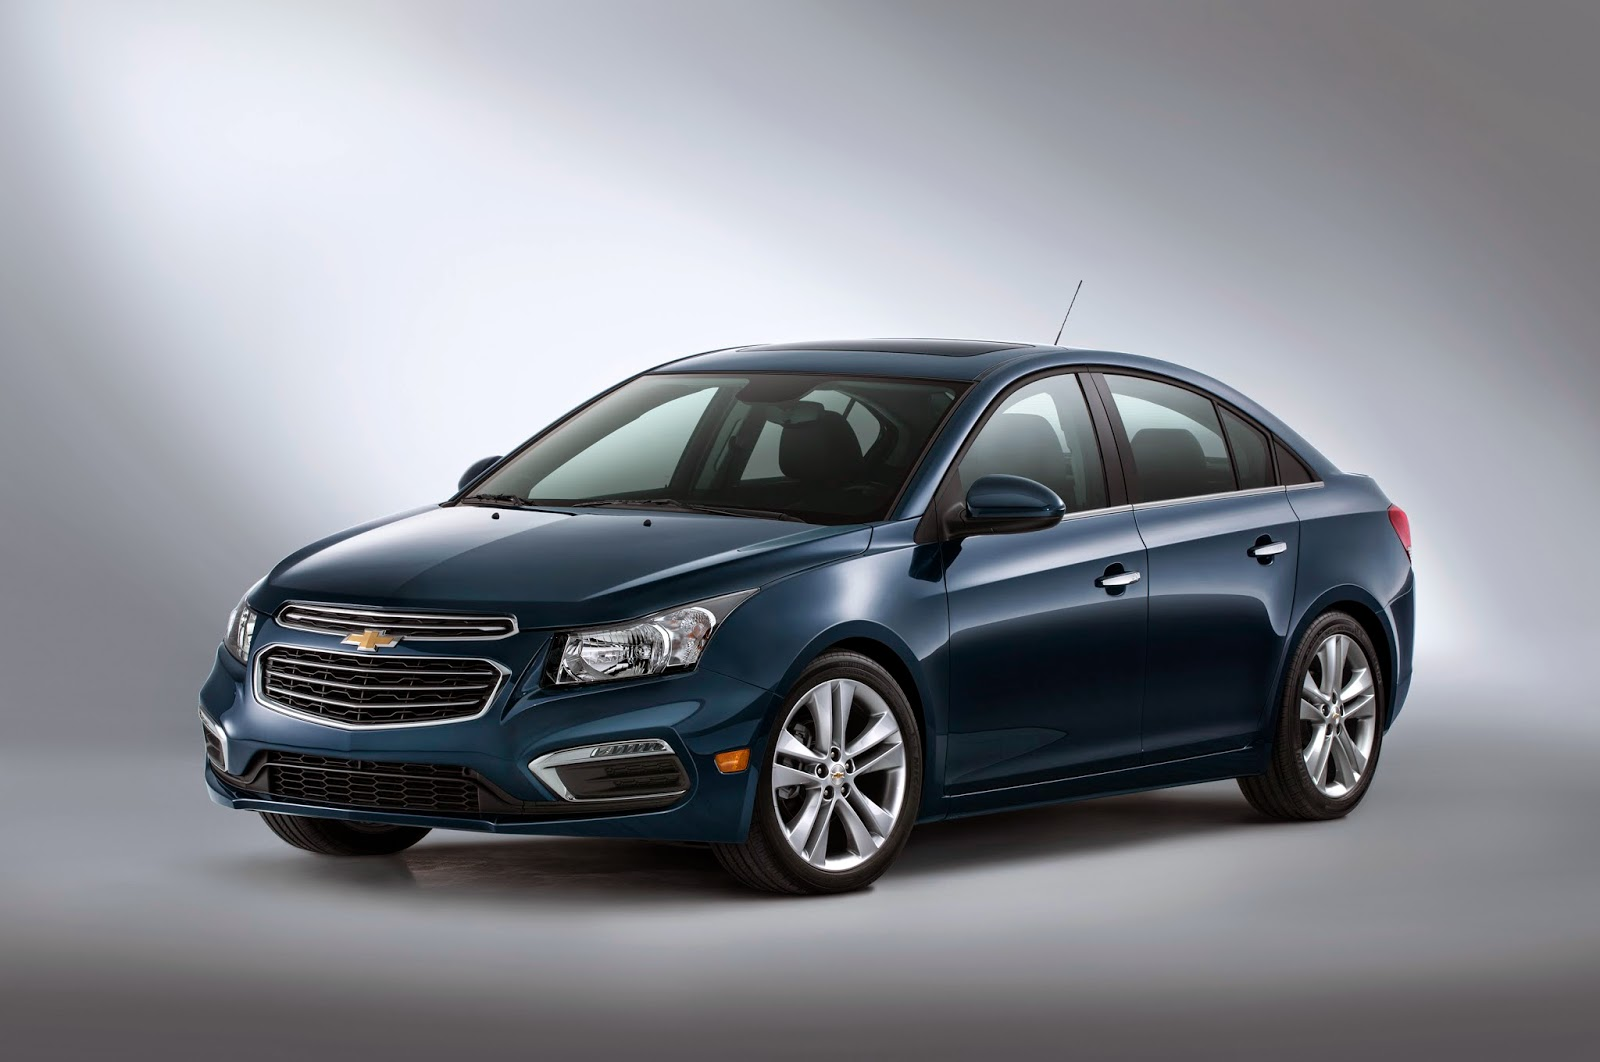 Updated 2015 Chevy Cruze Debut Announced